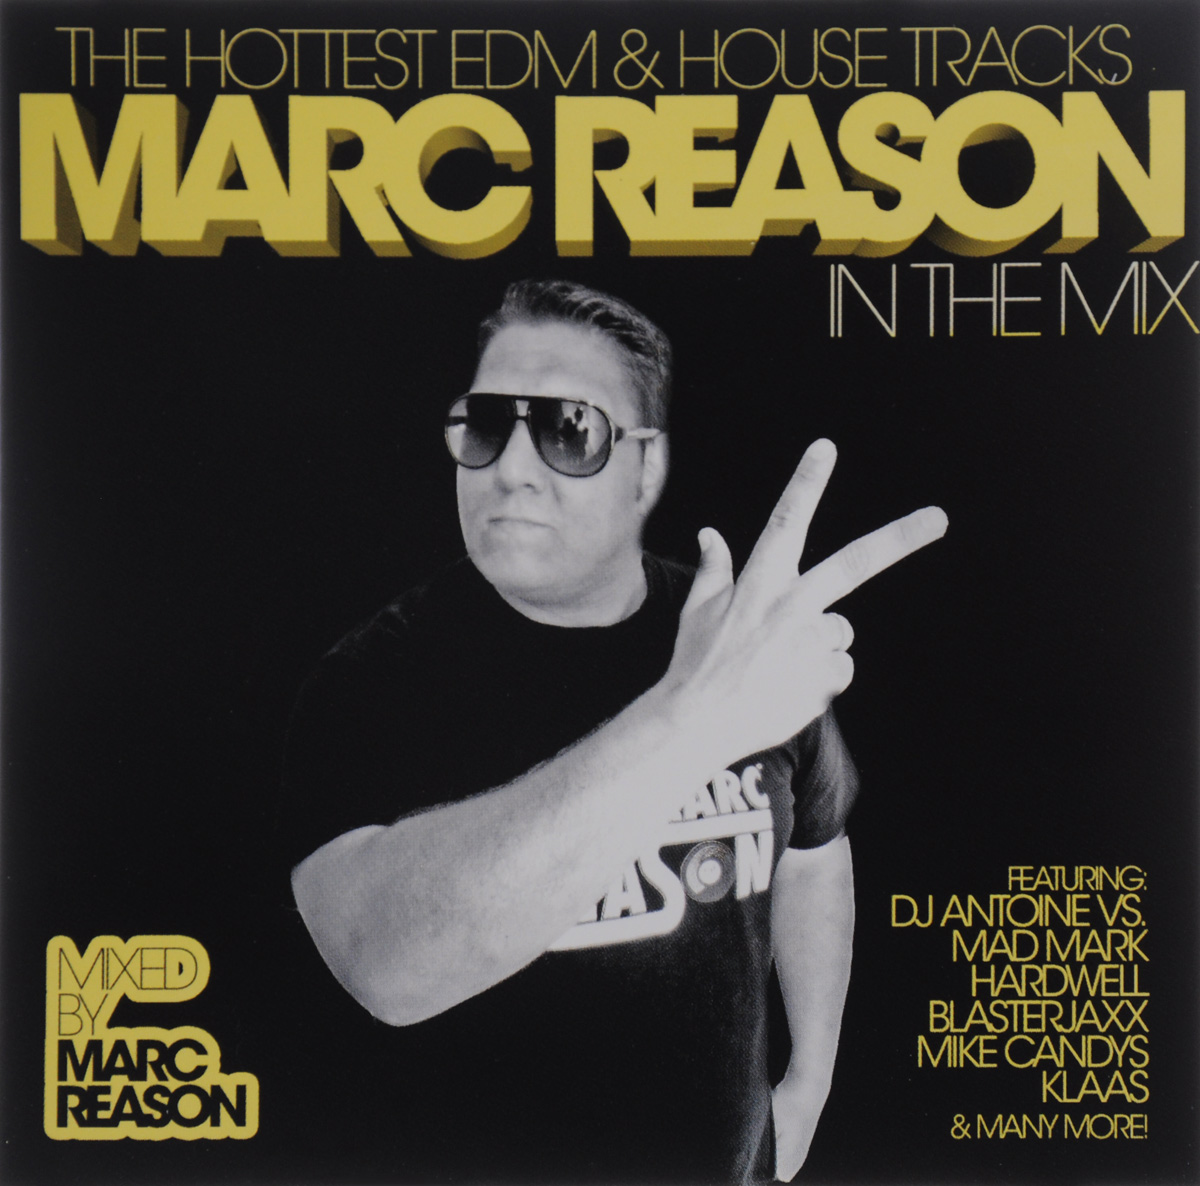 Marc Reason,Mr. Da-Nos,Рене де ла Моне,Slin Project,Audiomodelz,Джордж Купер,Captain Jack,Bad Habit Boys,Майк Кэндис,Skyfreak,Crizzn,Blutonium Boy,Cappella,Данте Томас,DJ Van,Klaas,Dj A.N.D.Y.,The 49ers,Sabrina Terence Marc Reason. In The Mix (2 CD) deadstar crew 7 morton laura bootmasters мартин сола miami inc fawni энди джей рауэлл slin project рене де ла моне колонел рид disco house 2013 2 2 cd